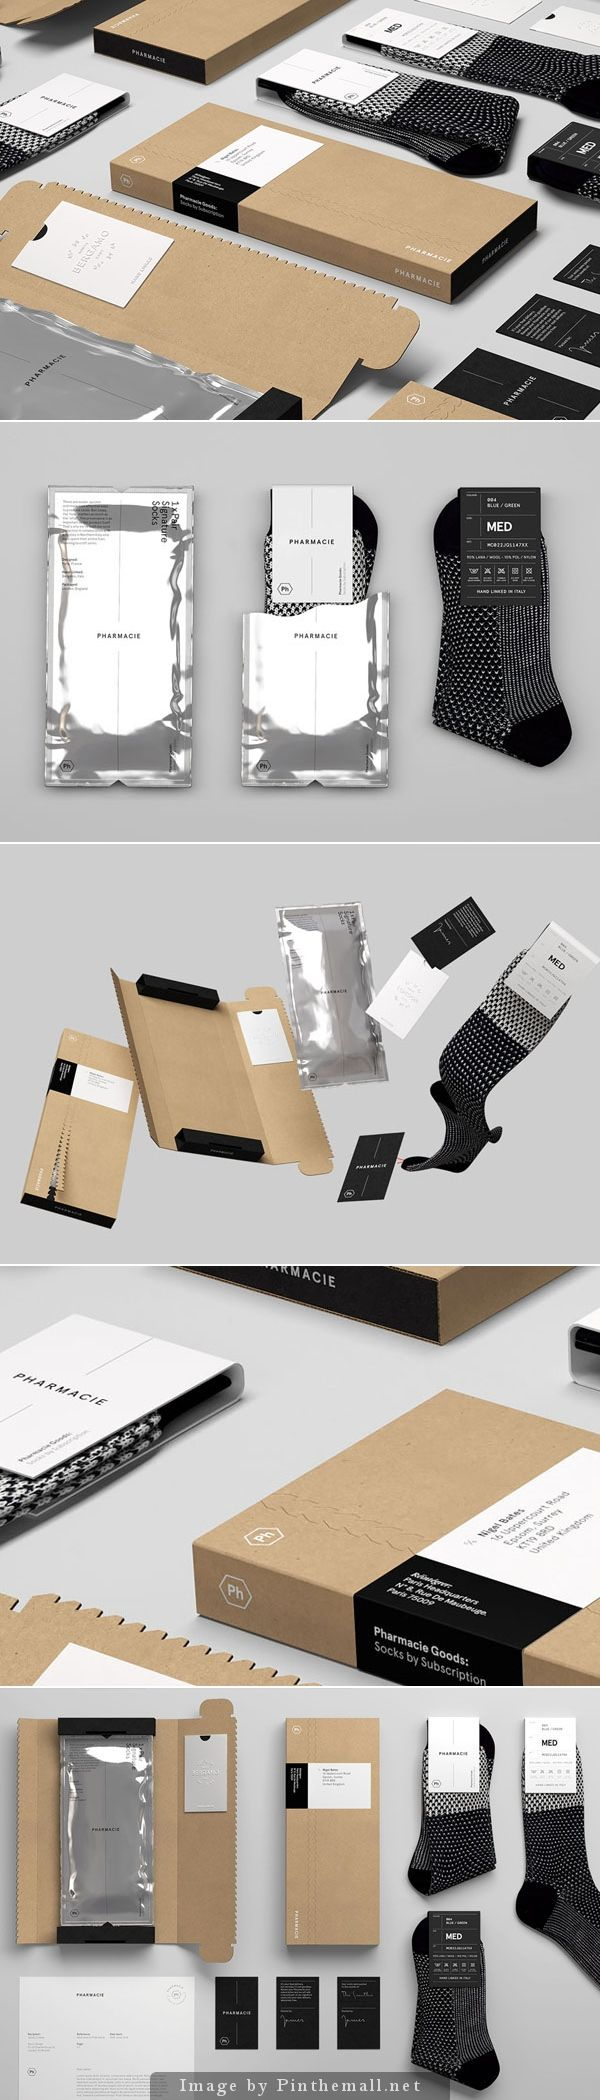 Pharmacie Goods by Socio Design